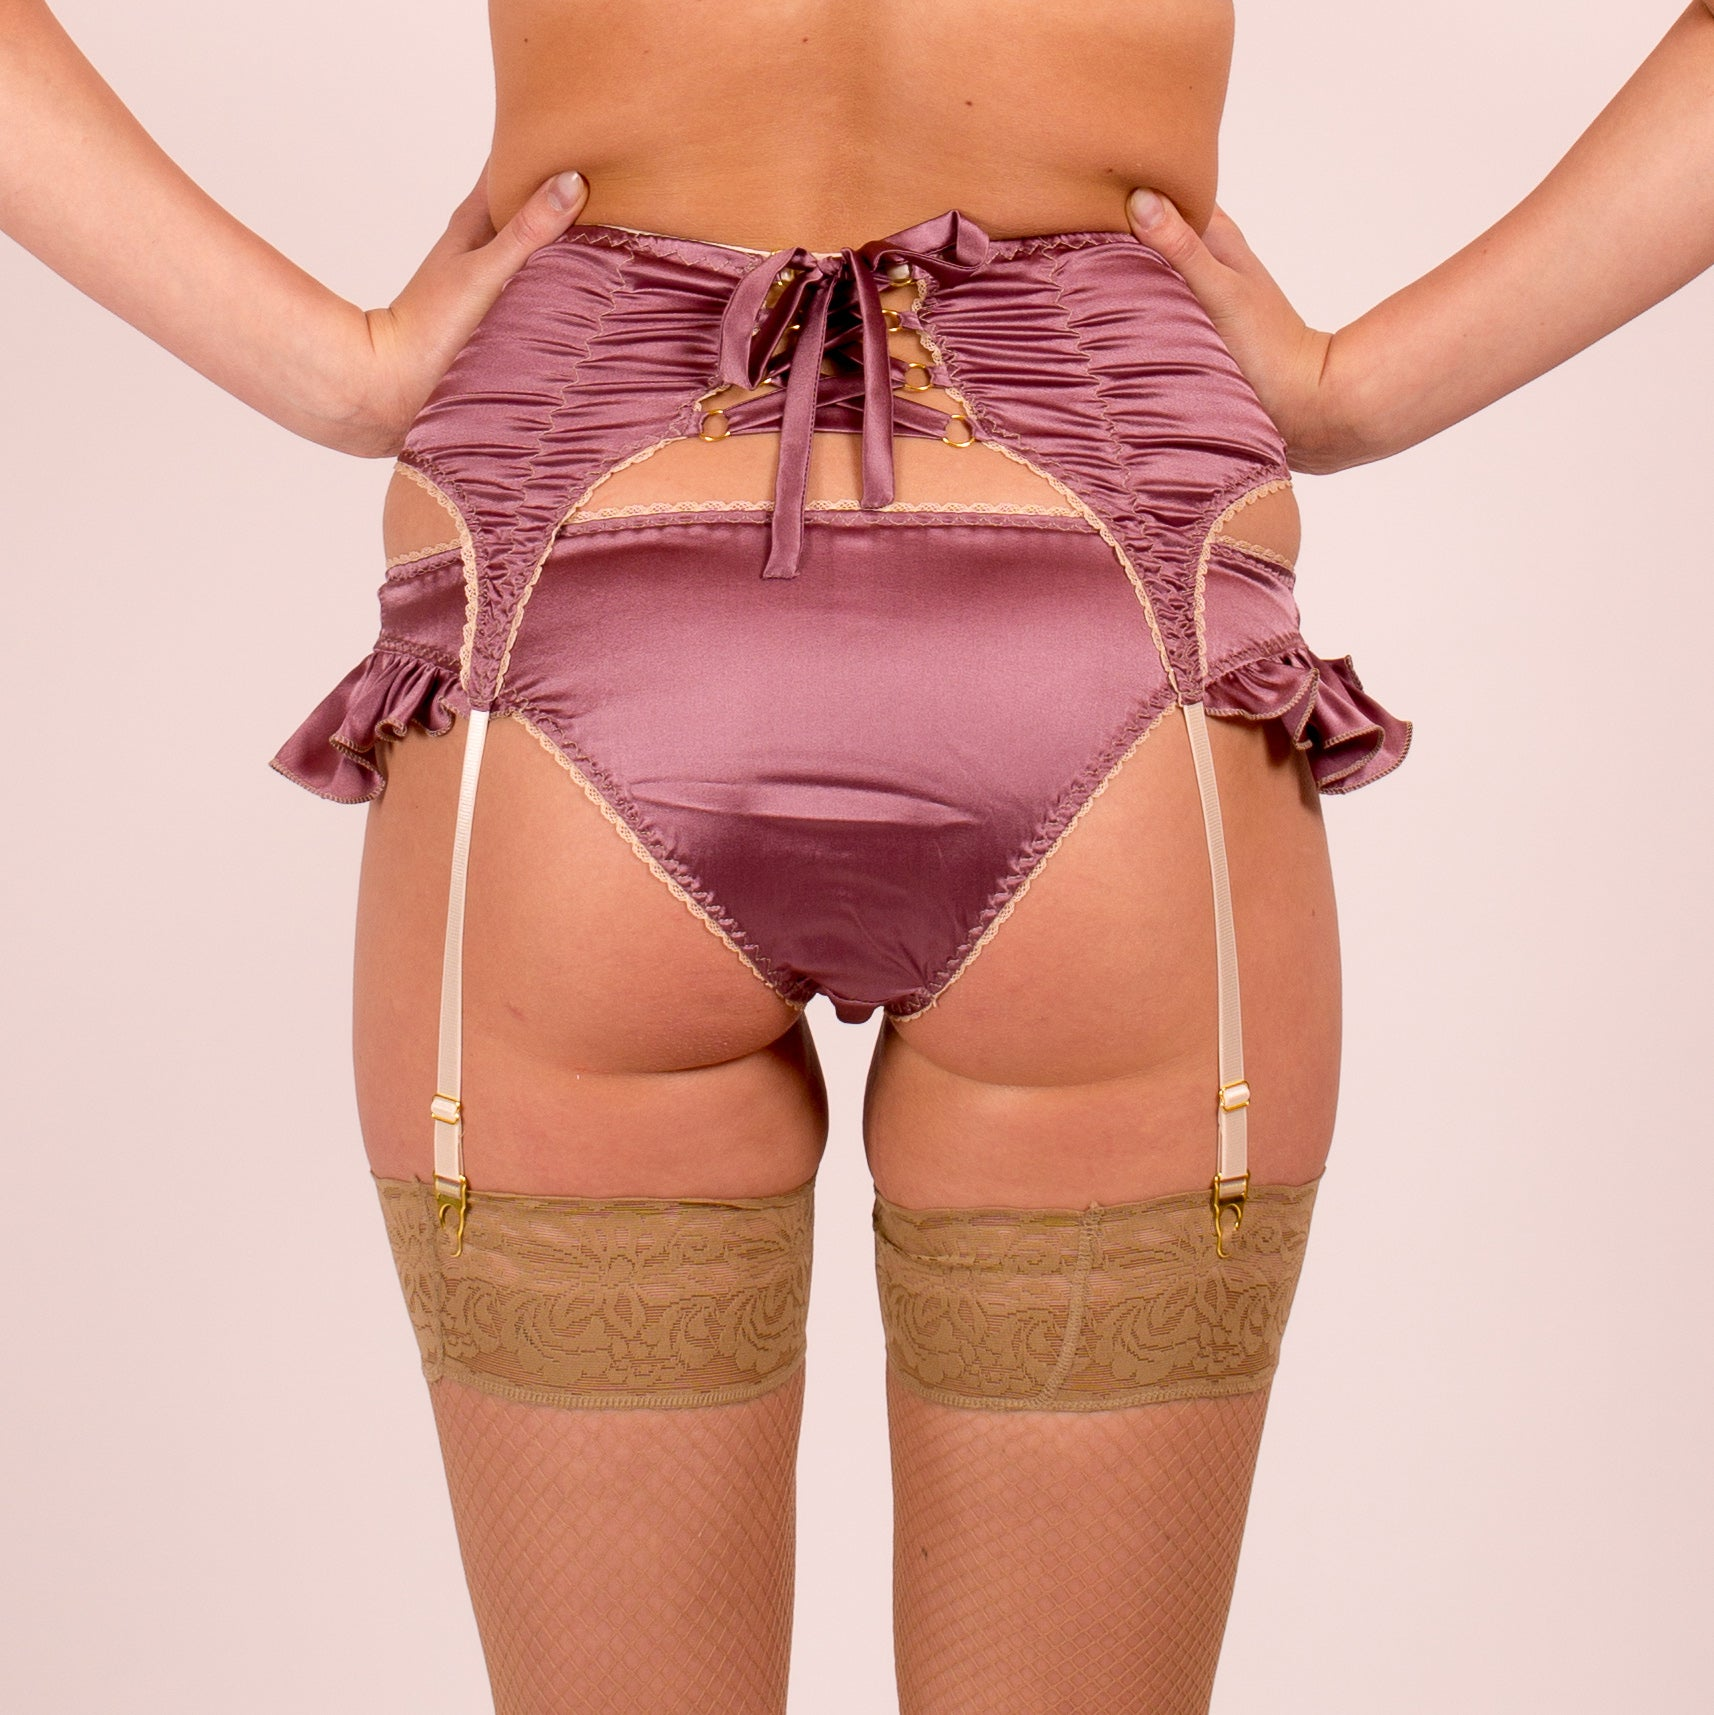 Venus: Silk Satin Low Rise Panties with Cute Frills at the sides. 19 Colors